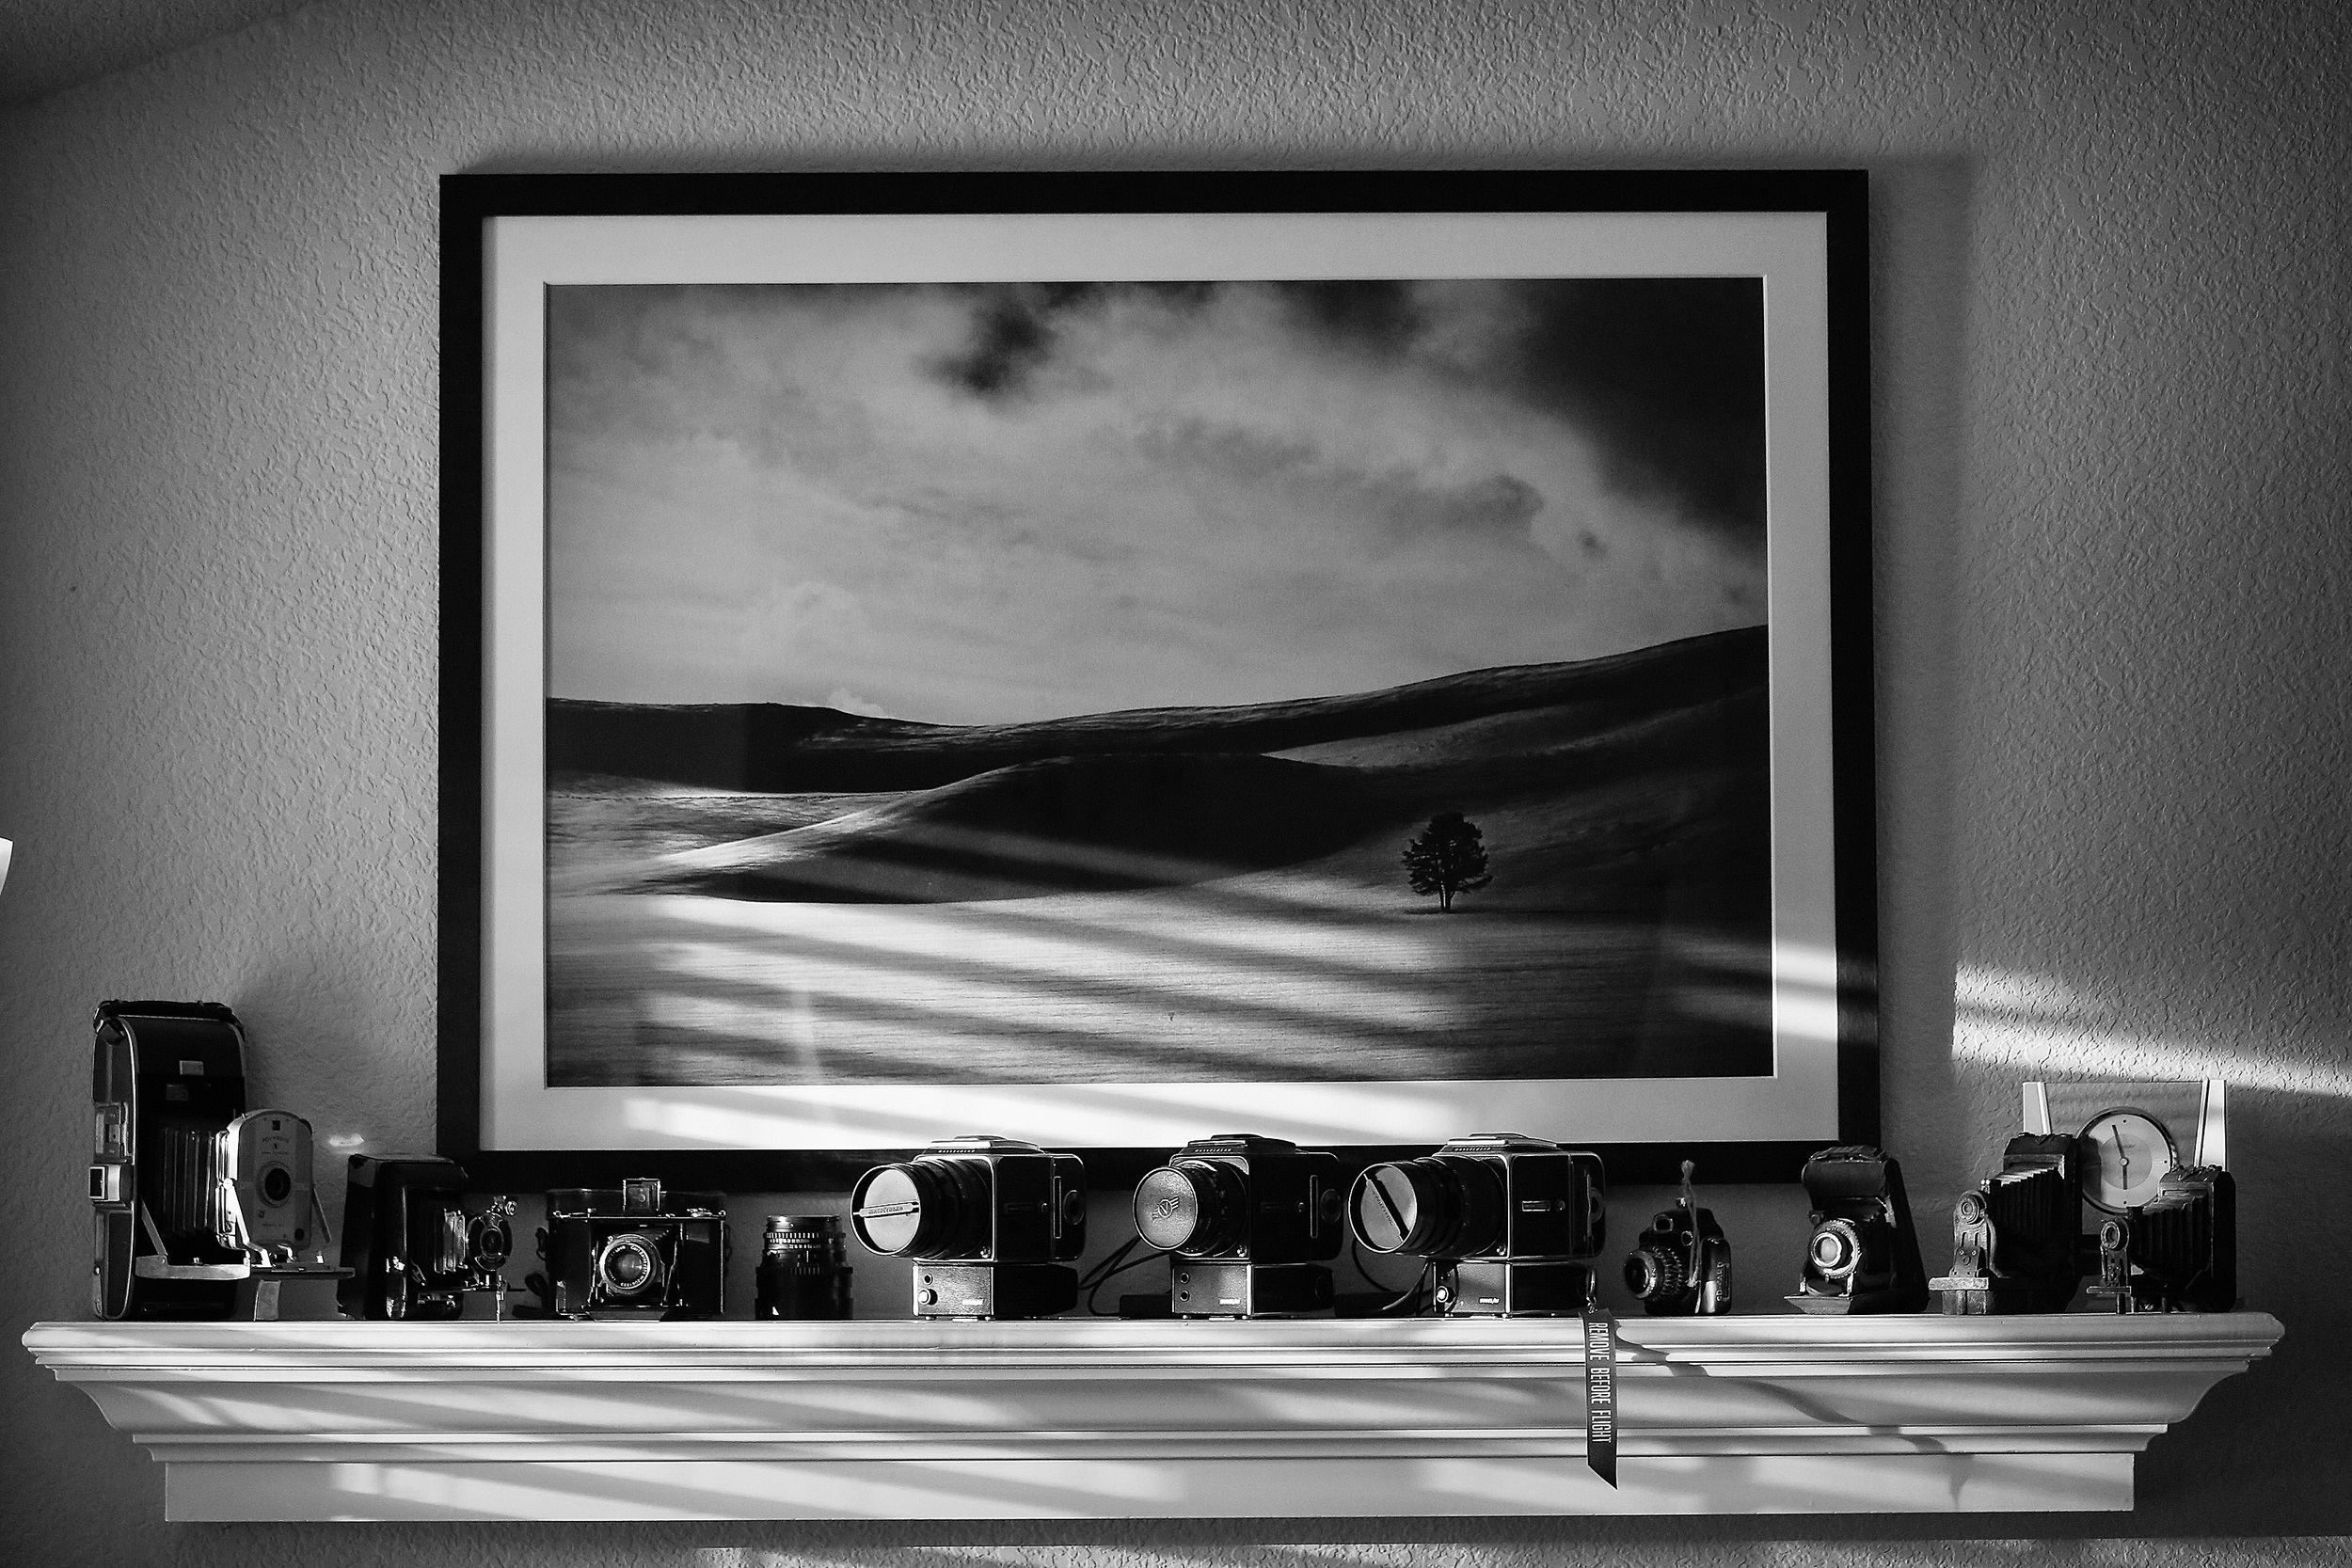 An example where black and white seemed logical since the walls were white, the framed print was b/w and everything in the picture was black. Light and shadow were the primary elements that made this image successful.